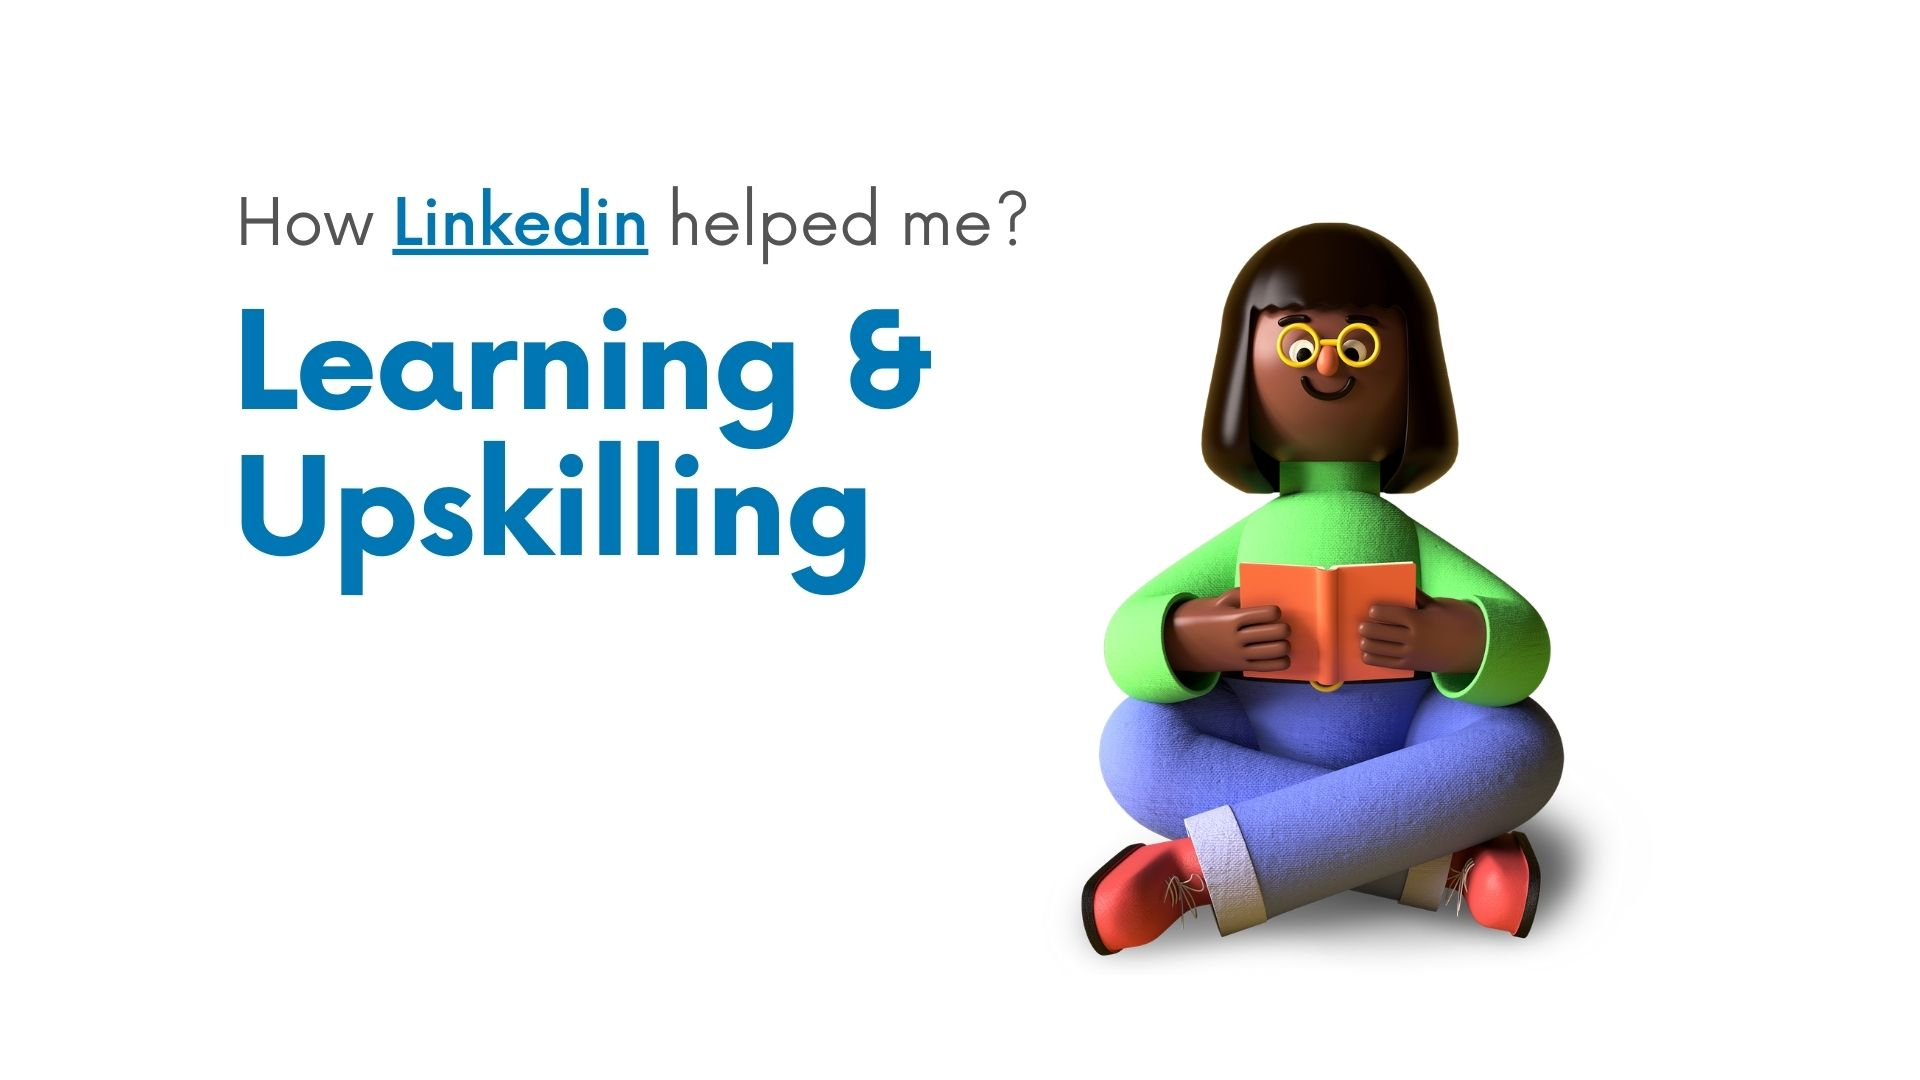 Learning and upskilling on Linkedin